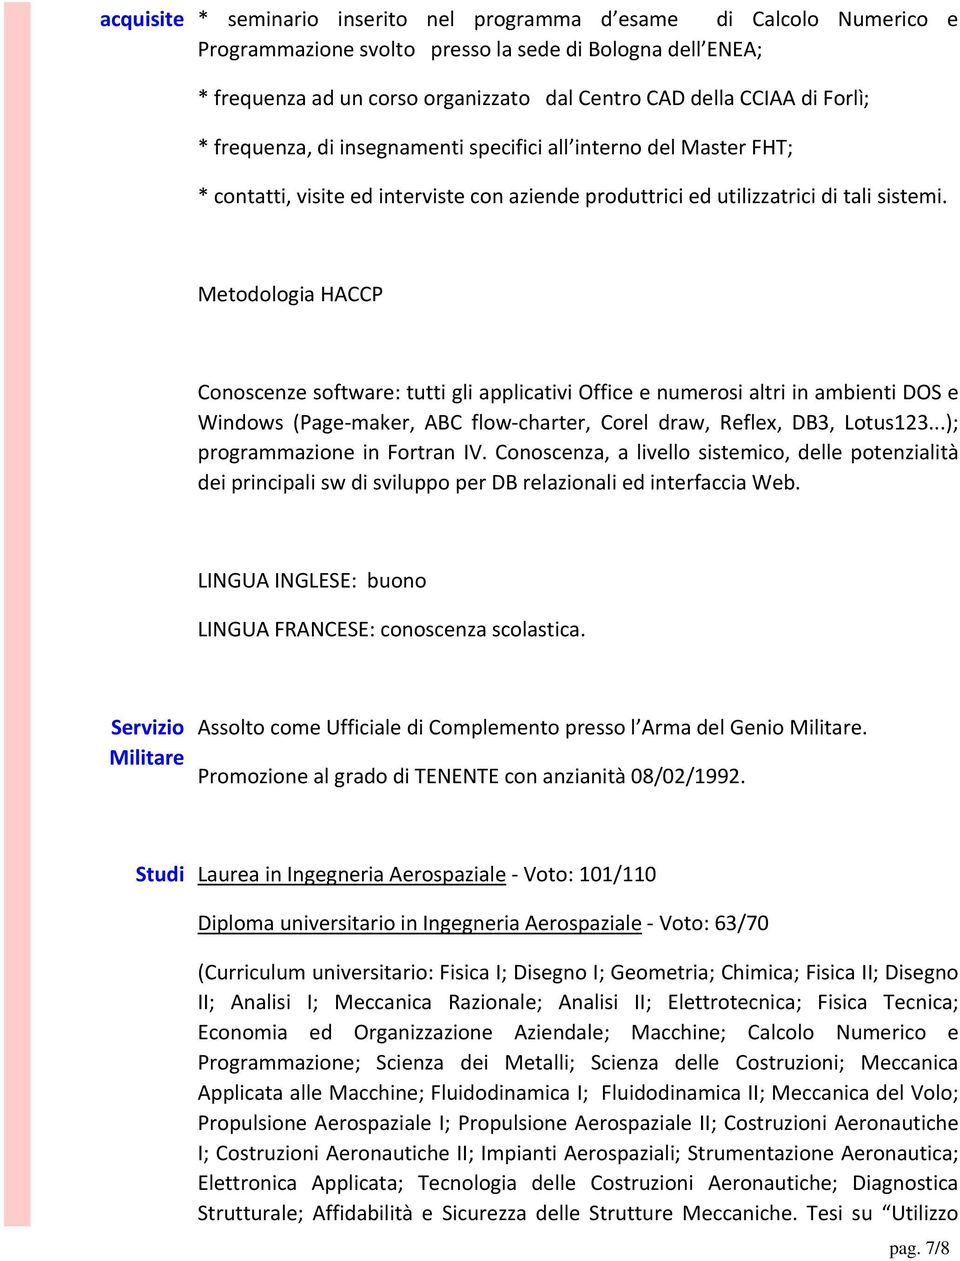 Metodologia HACCP Conoscenze software: tutti gli applicativi Office e numerosi altri in ambienti DOS e Windows (Page maker, ABC flow charter, Corel draw, Reflex, DB3, Lotus123.